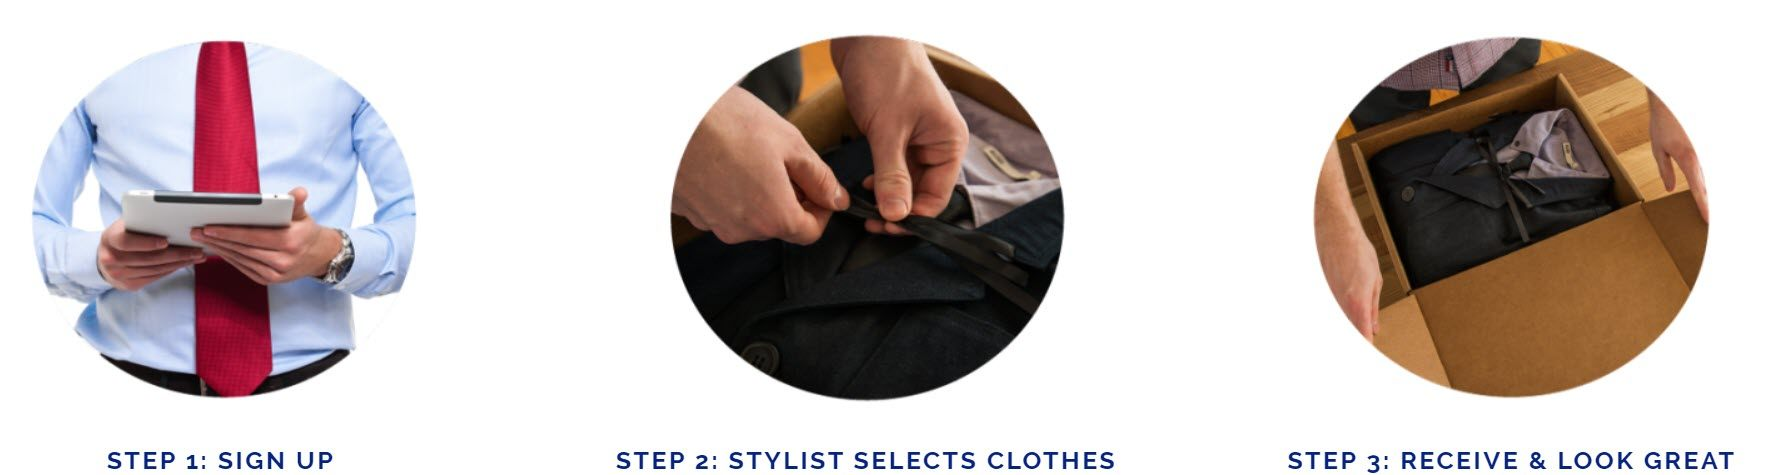 mens clothing affiliate programs - Urbane Box stripe